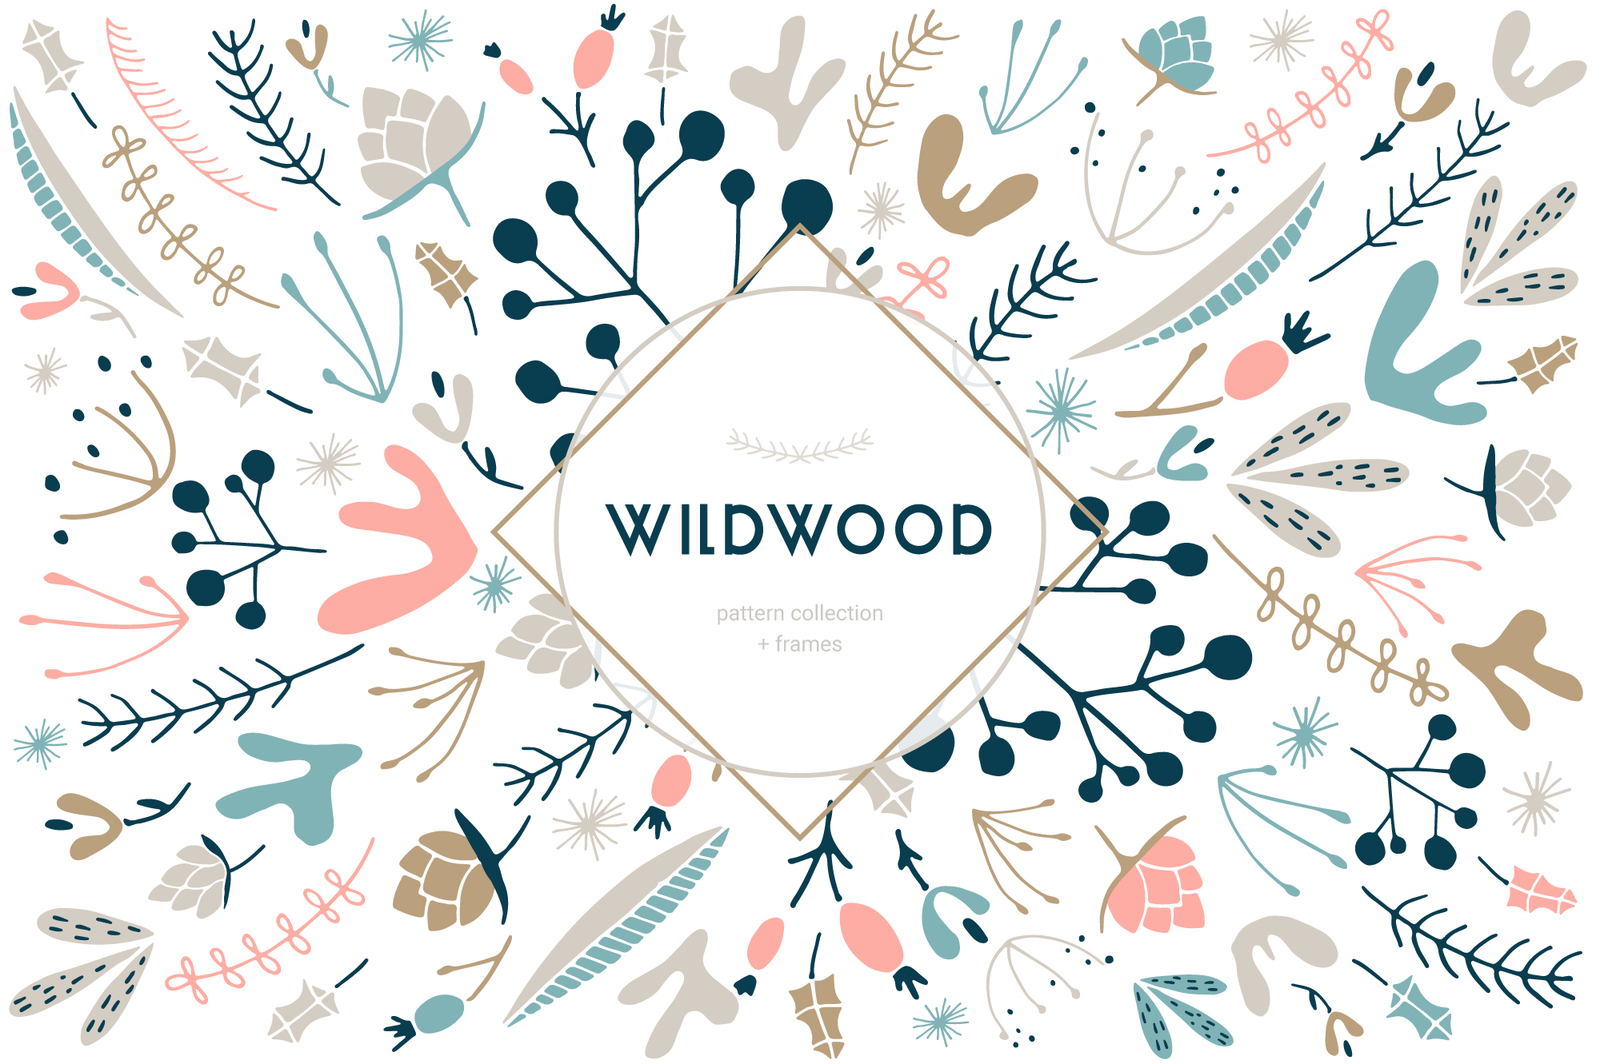 Wildwood pattern collection